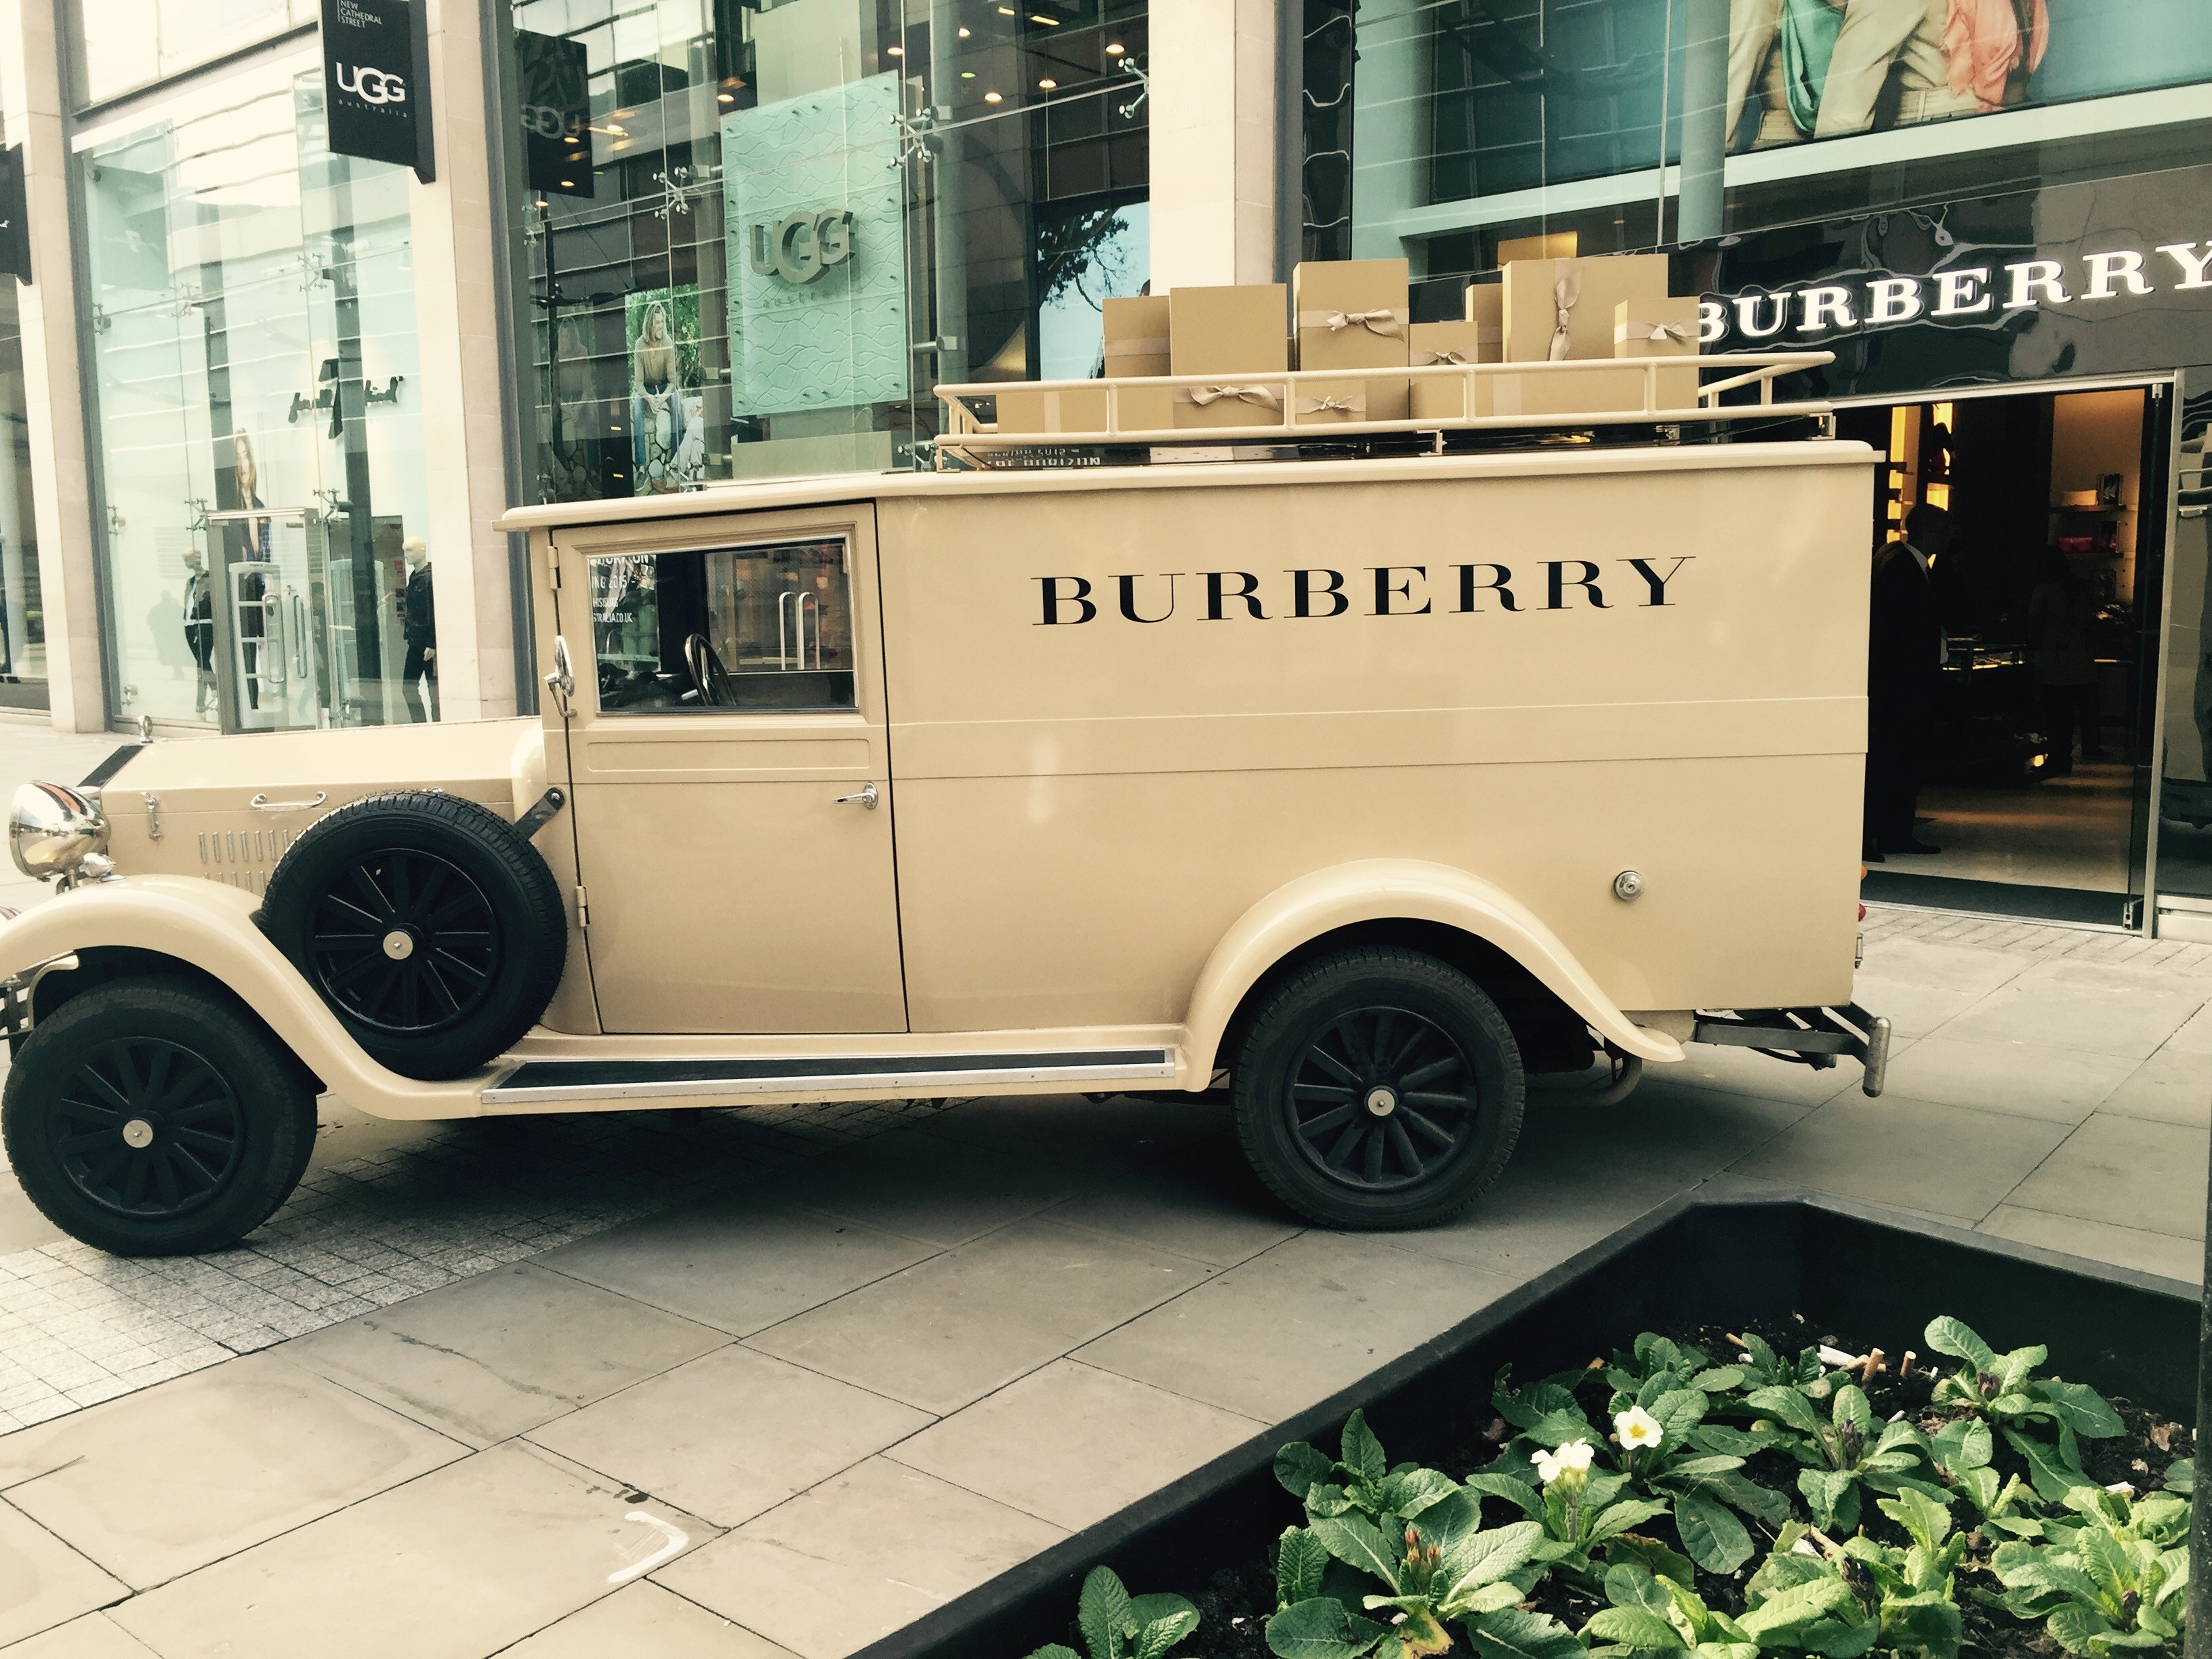 Brown vintage promotional van branded by Burberry